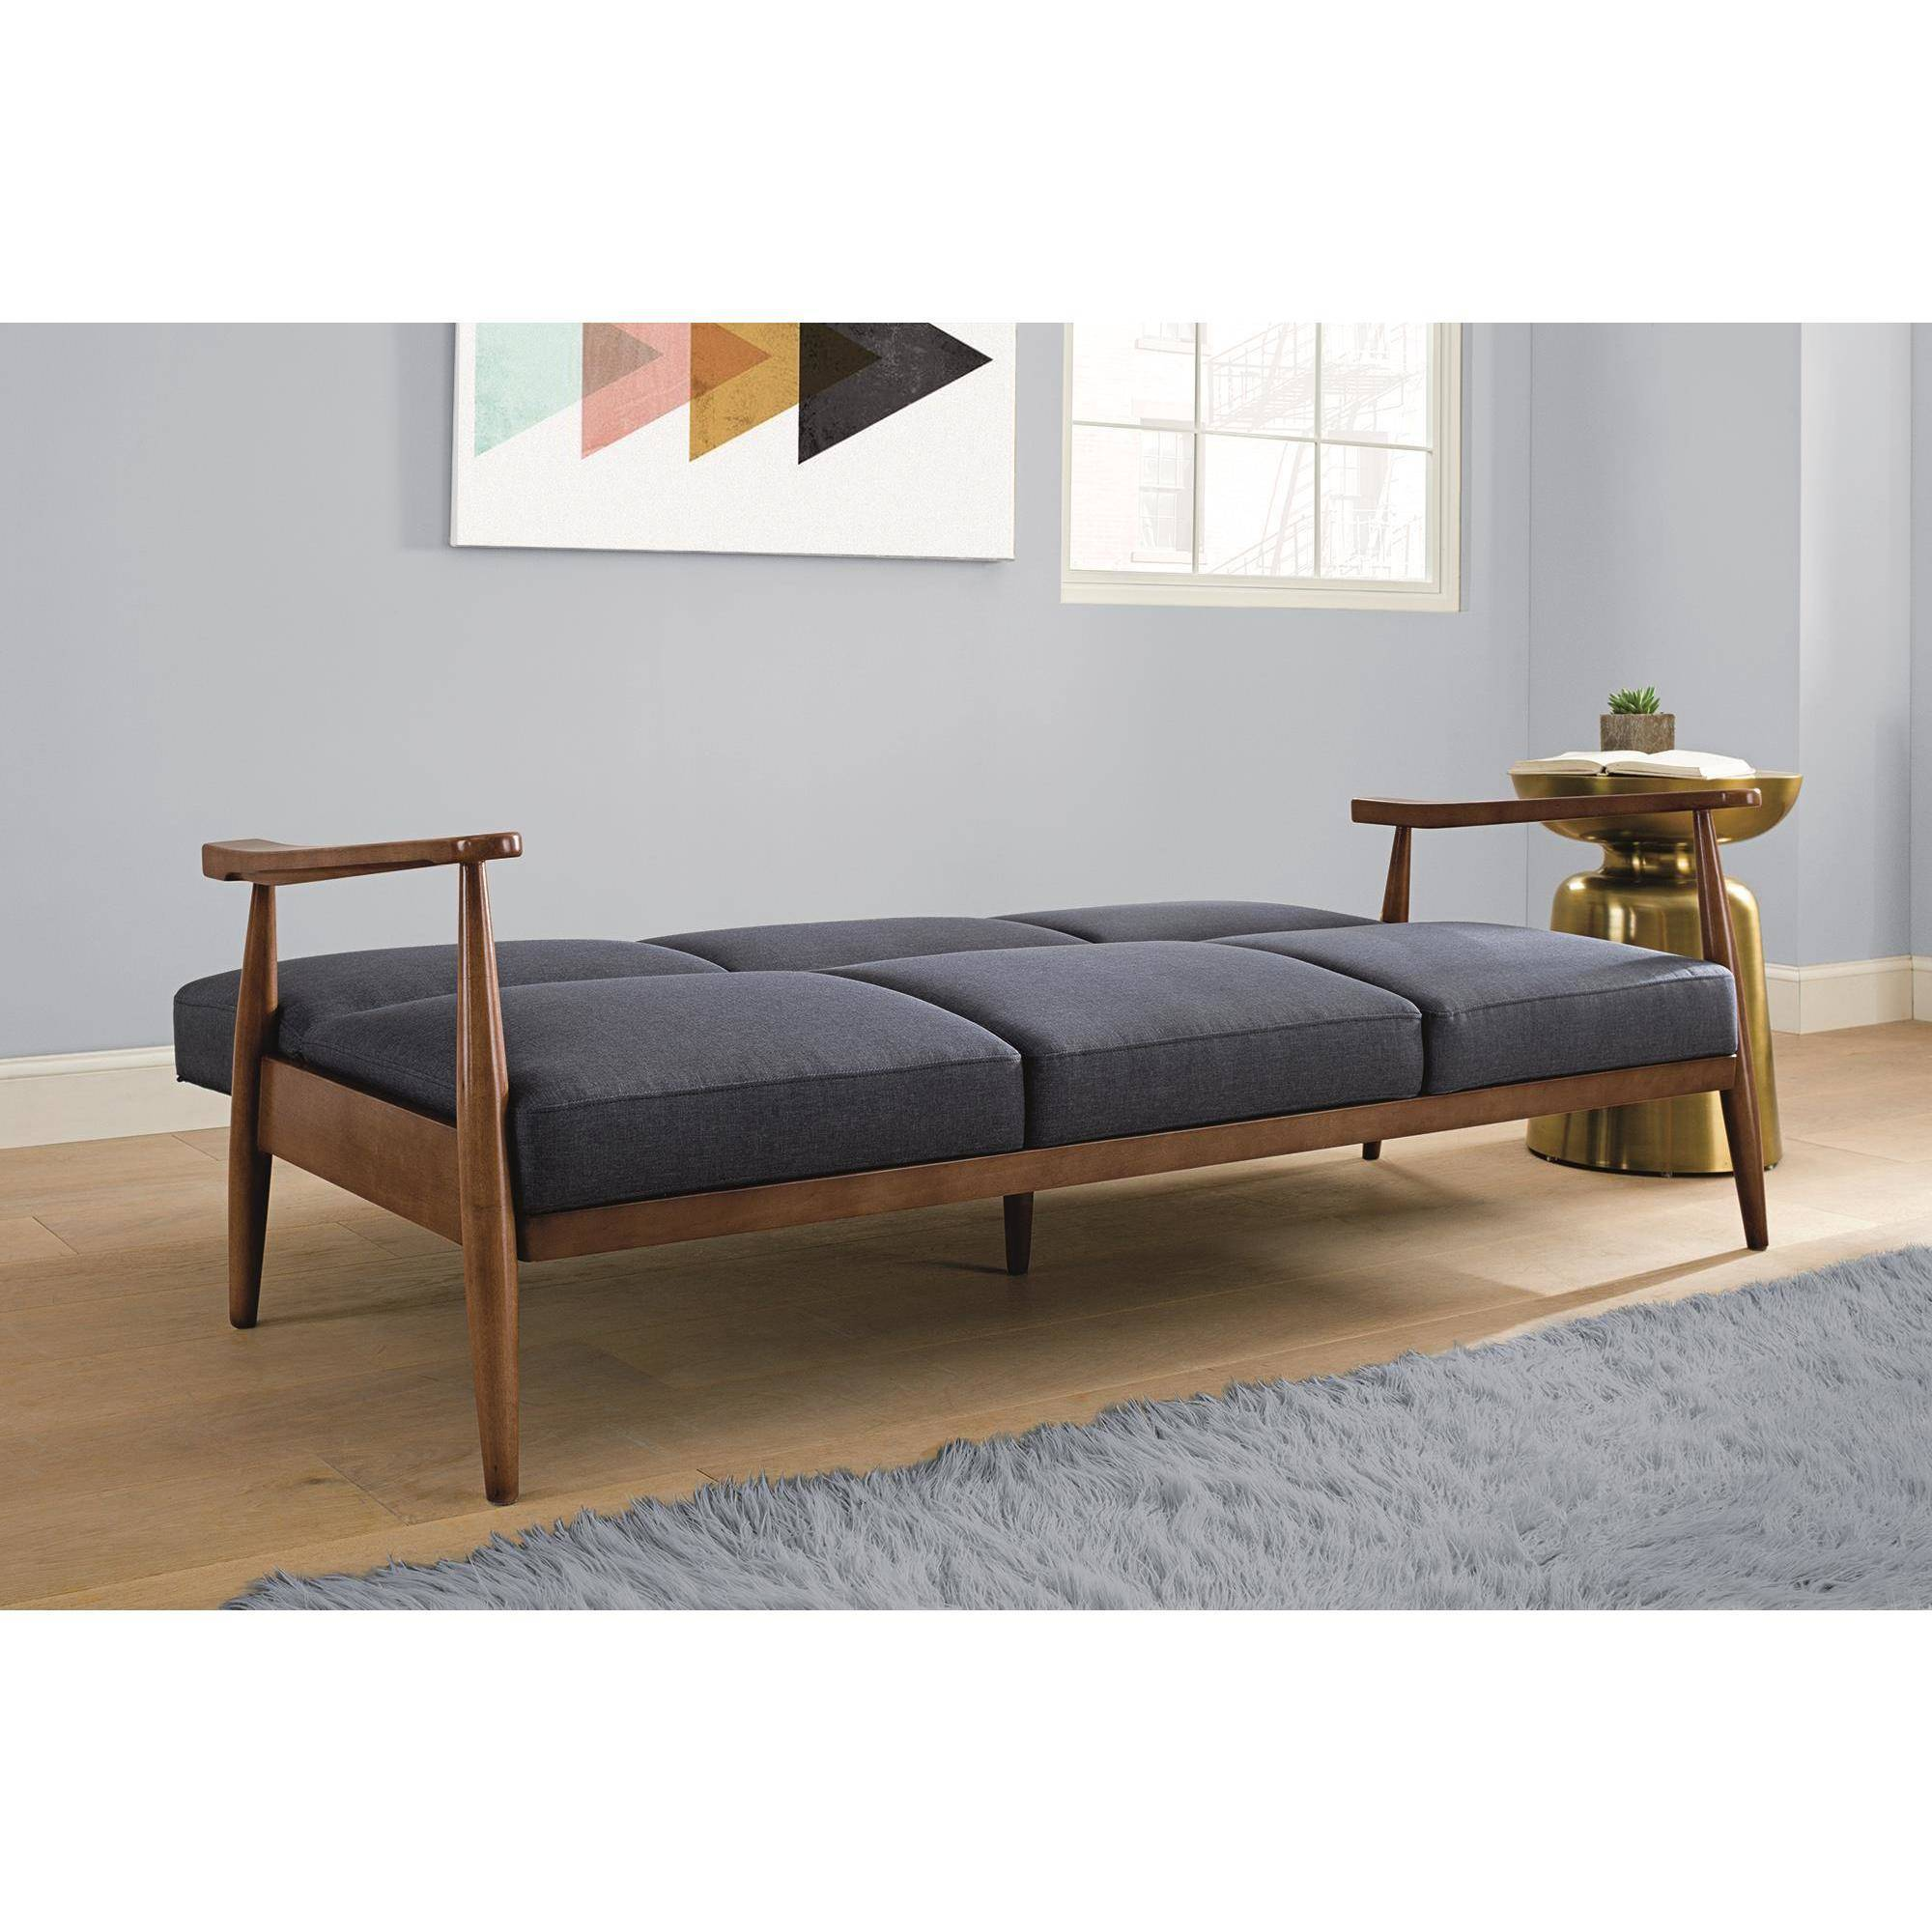 for with colors less futon multiple interesting futons chaise costco lounger emily convertible walmartcom